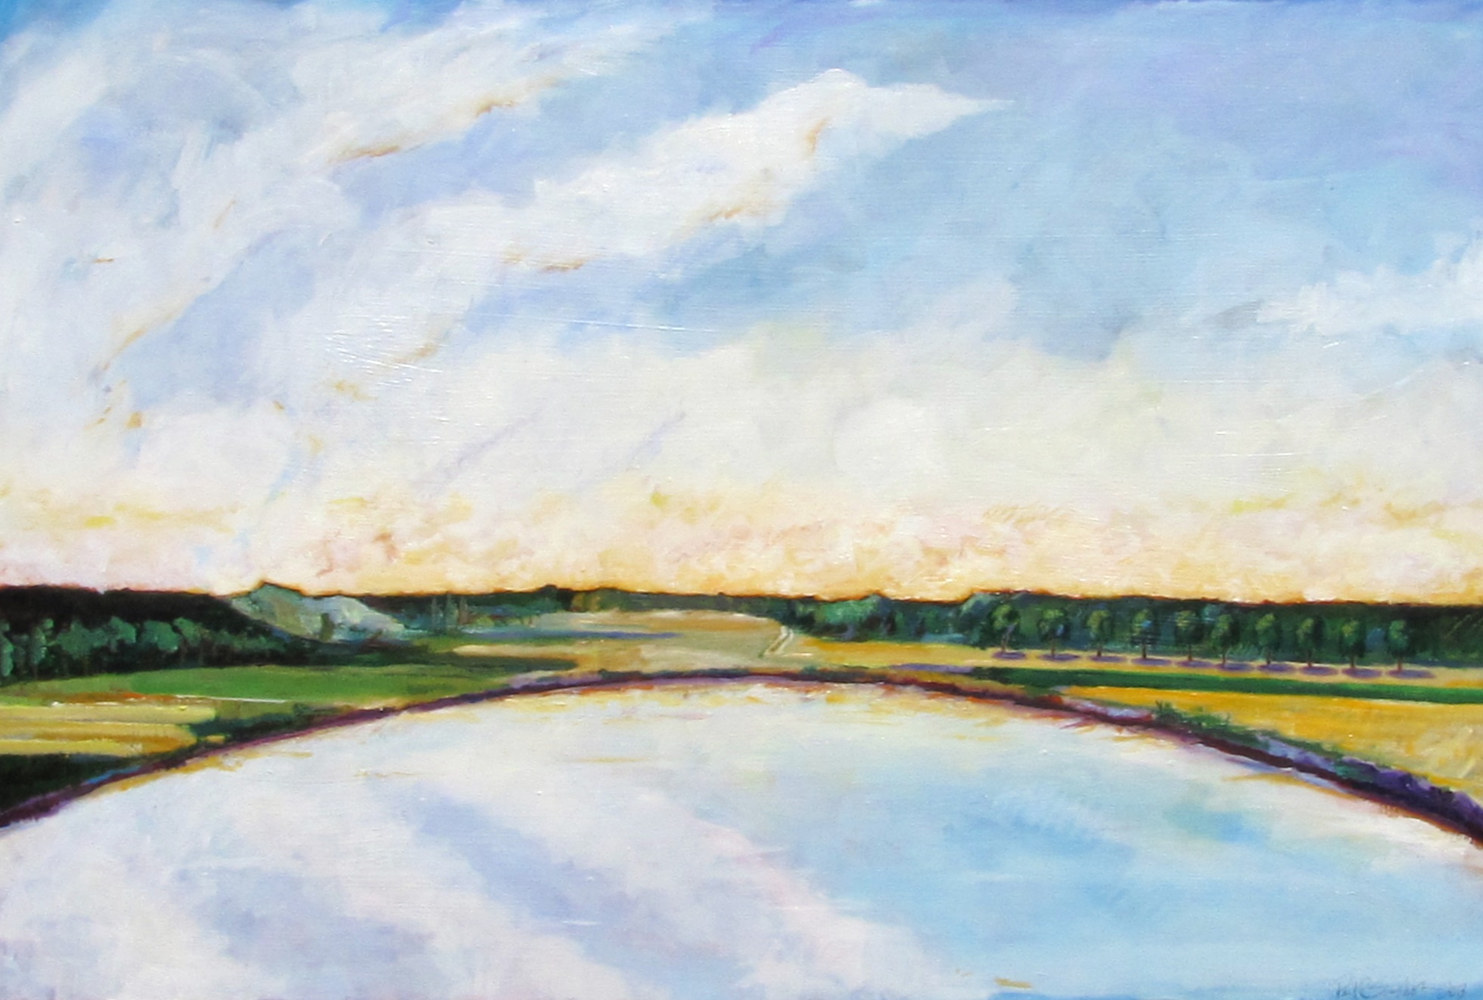 Oil painting Reservoir by Paul Sershon